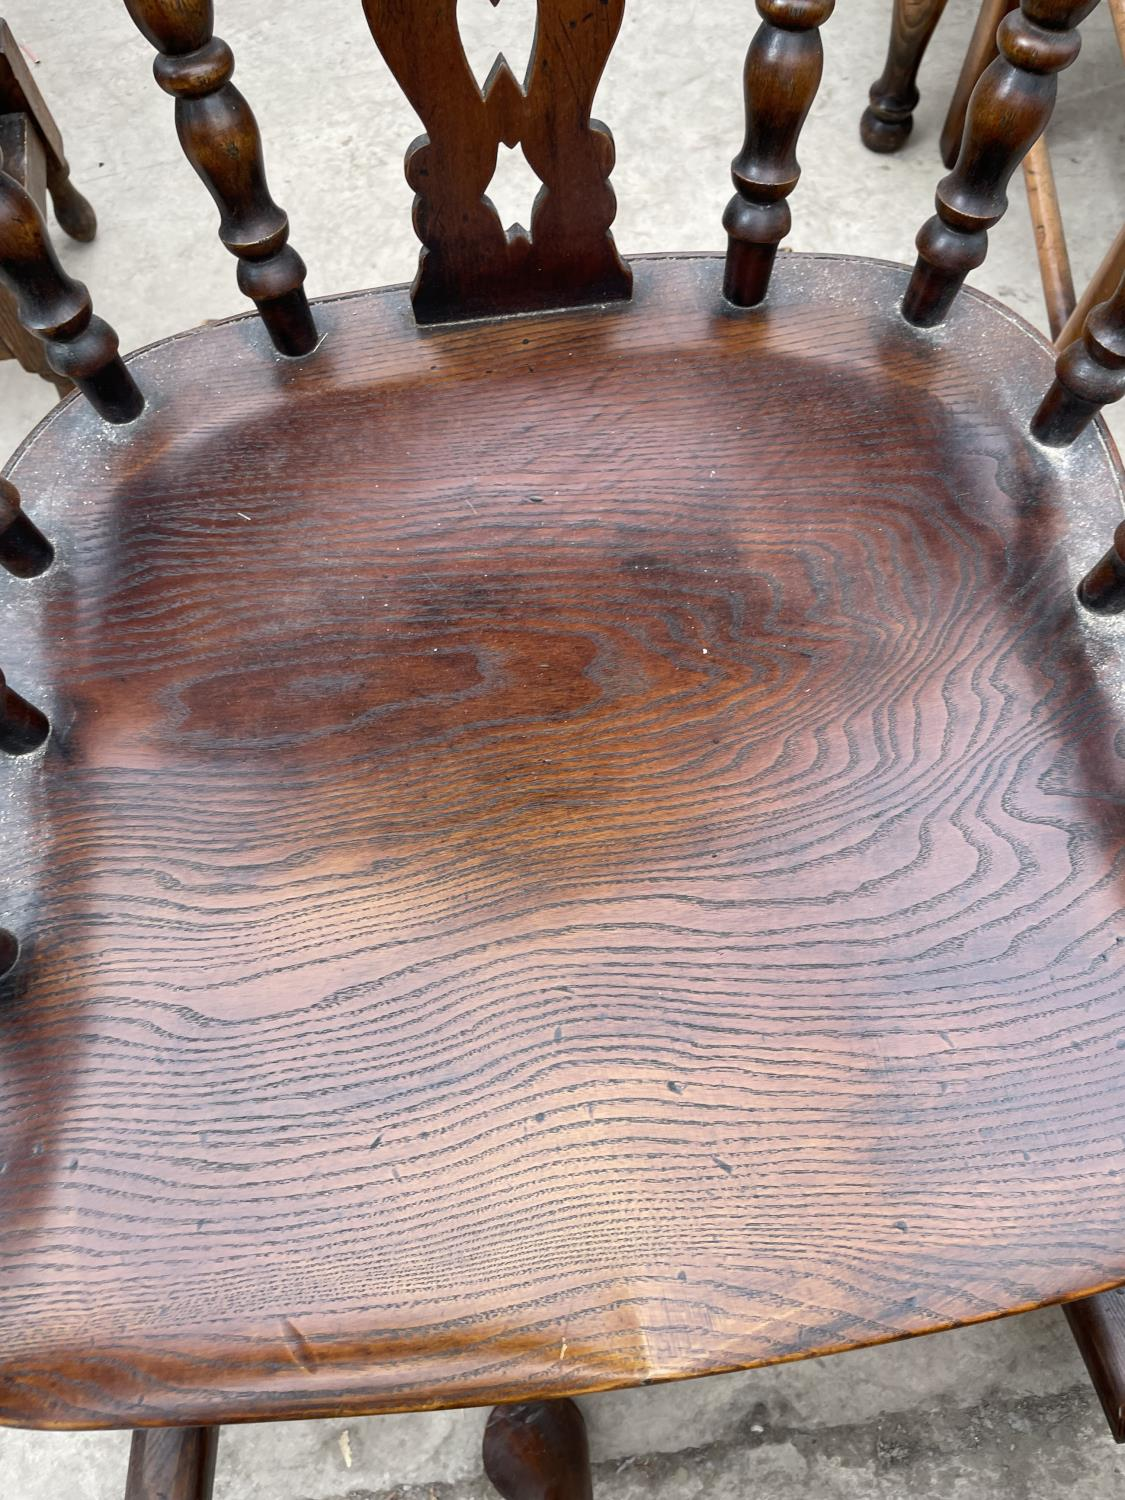 A REPRODUCTION WINDSOR ROCKING CHAIR WITH TURNED UPRIGHTS, BEARING LABEL 'R.E.FORSTER, WARRINGTON' - Image 5 of 5